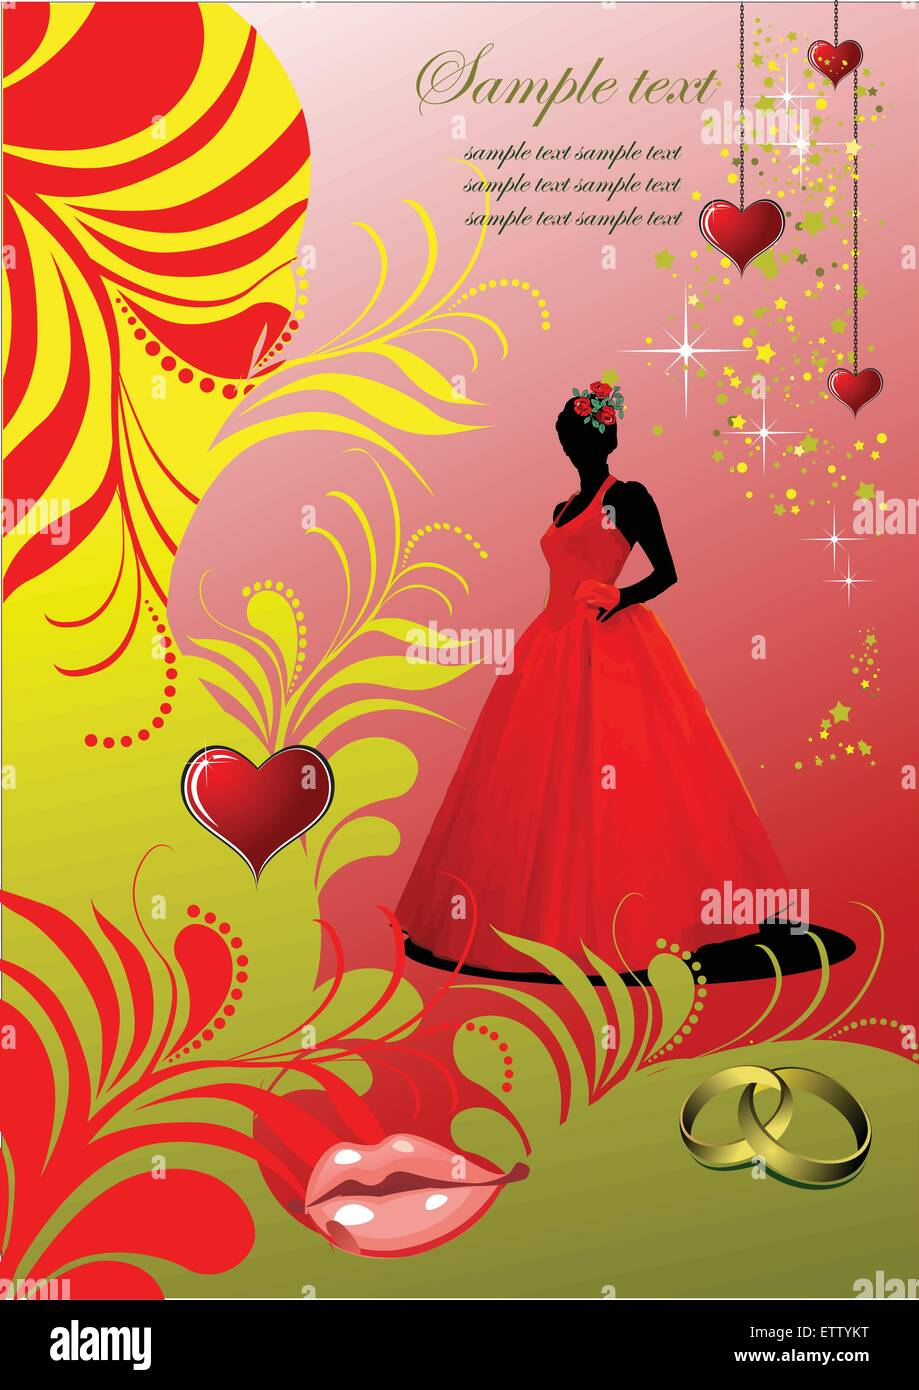 Wedding invitation card with hearts, lips and bride images. Vector ...